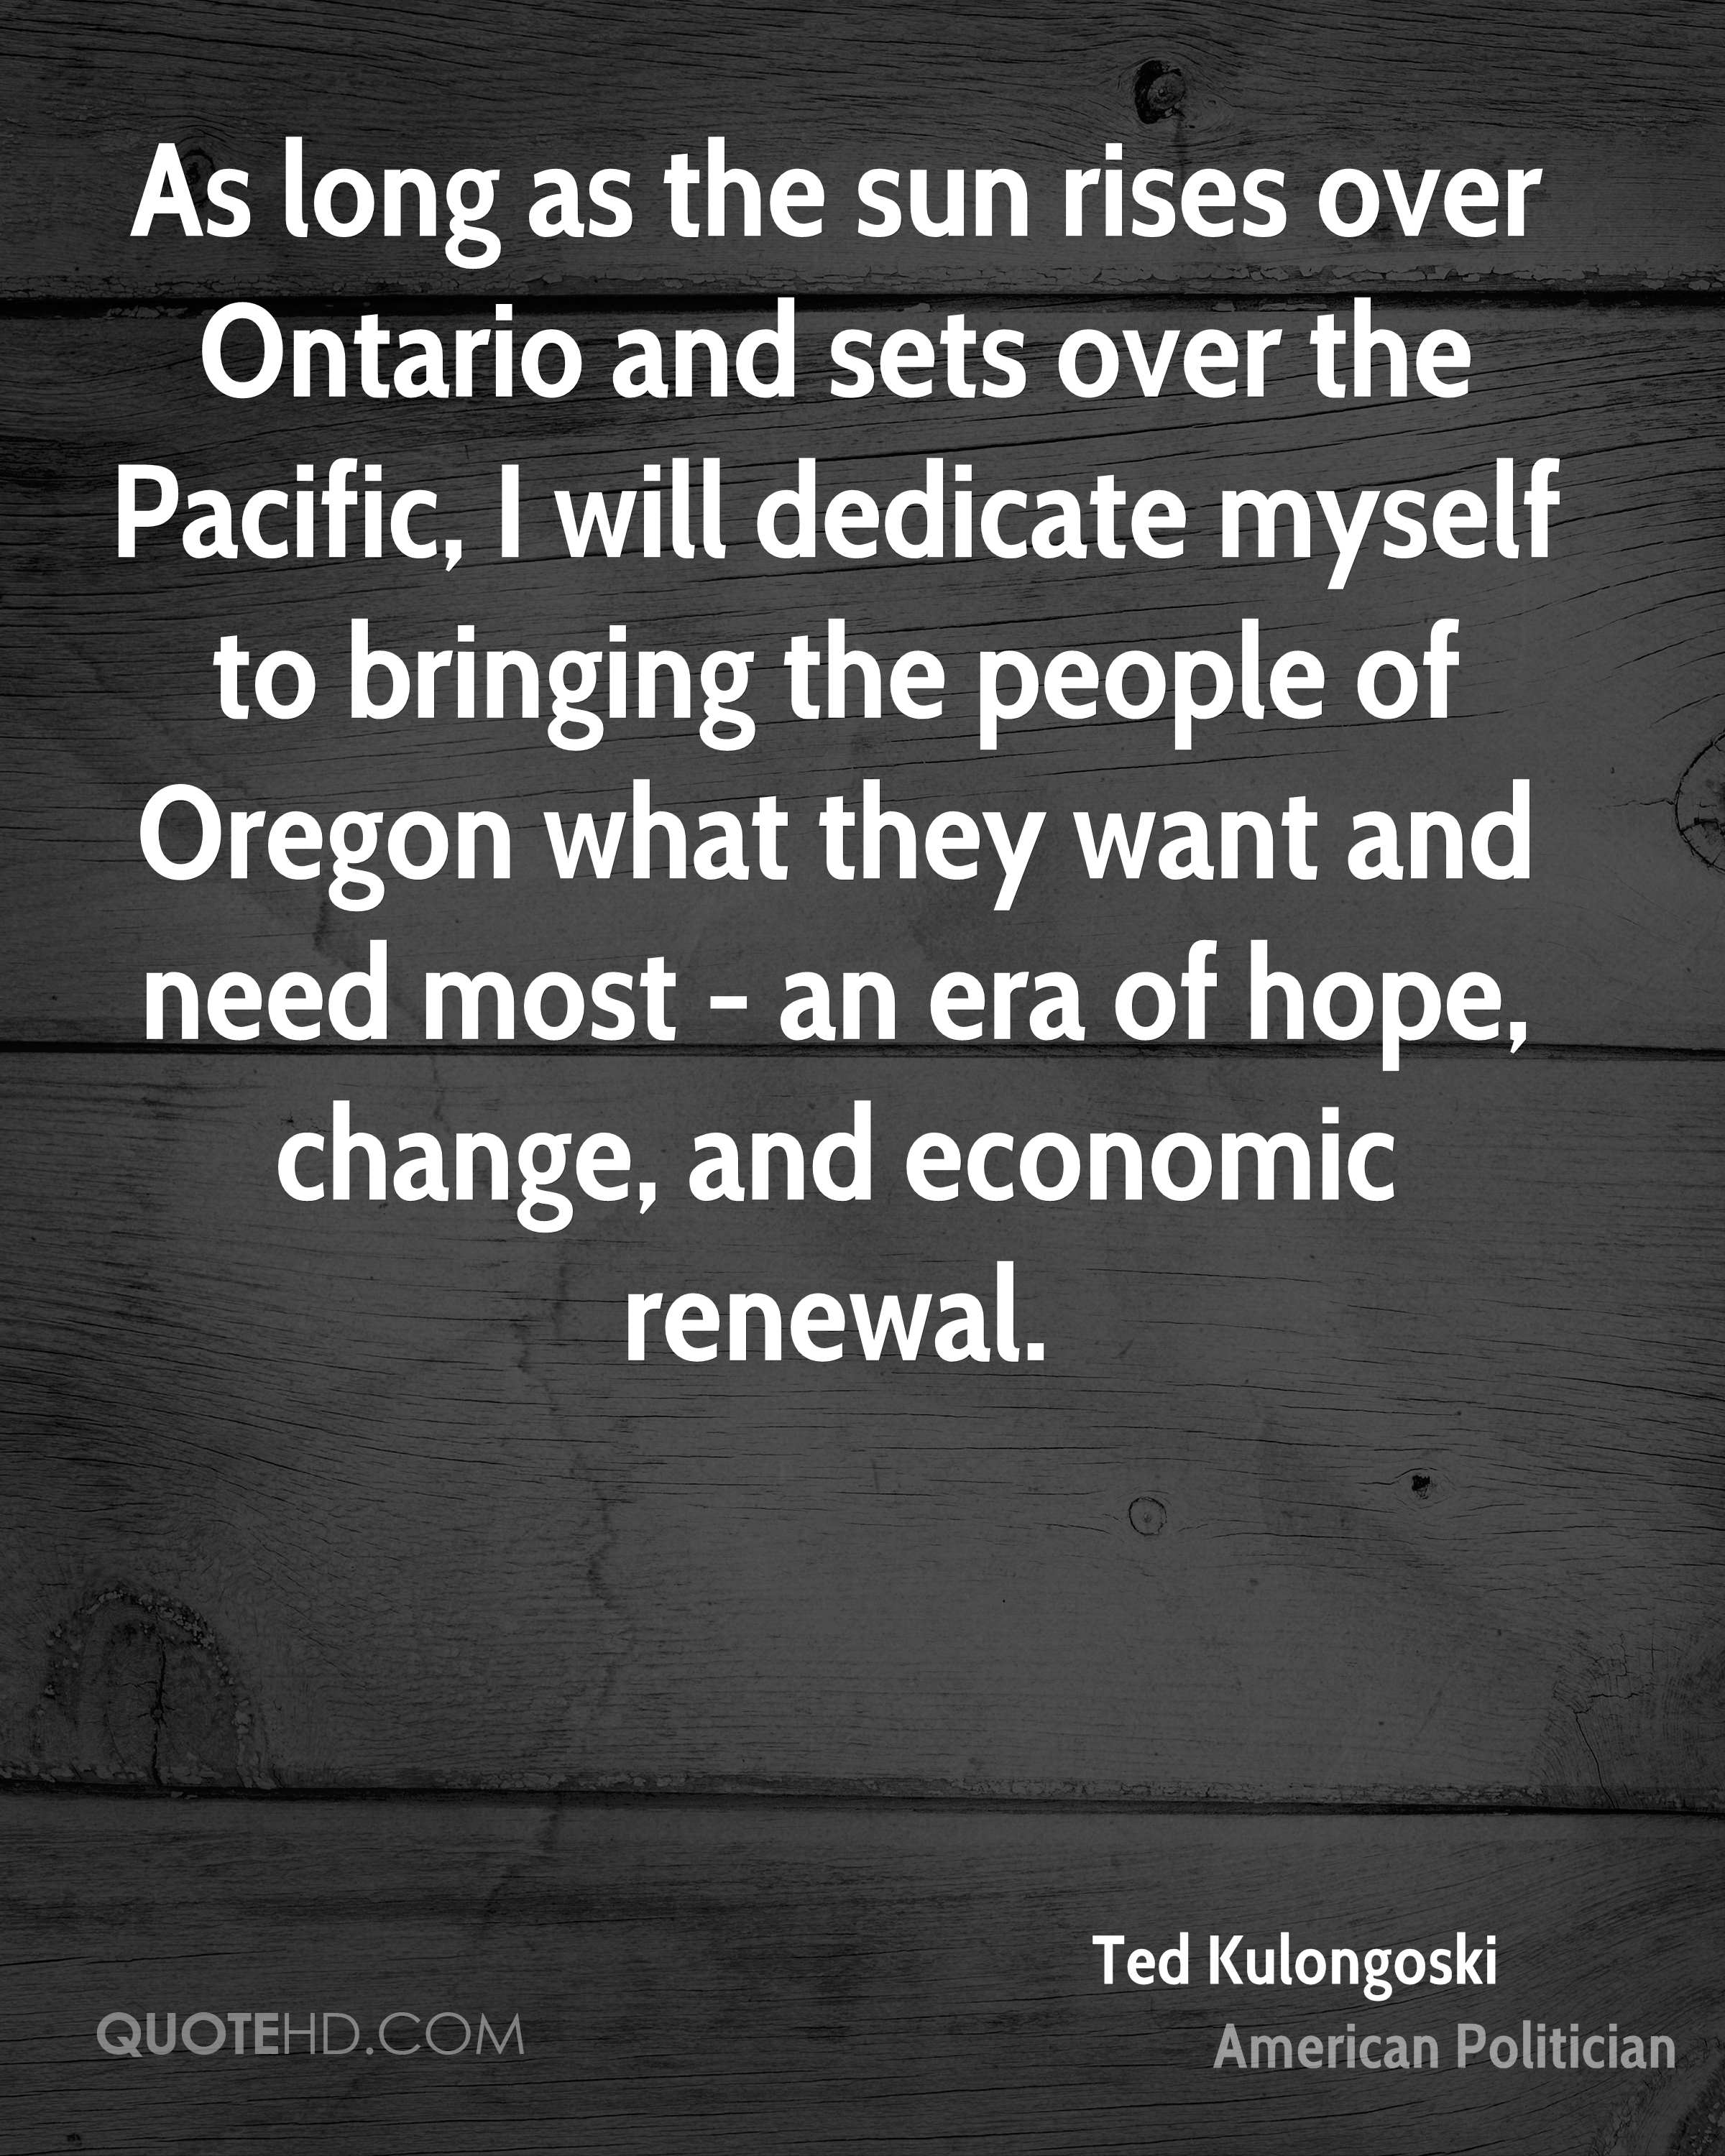 As long as the sun rises over Ontario and sets over the Pacific, I will dedicate myself to bringing the people of Oregon what they want and need most - an era of hope, change, and economic renewal.